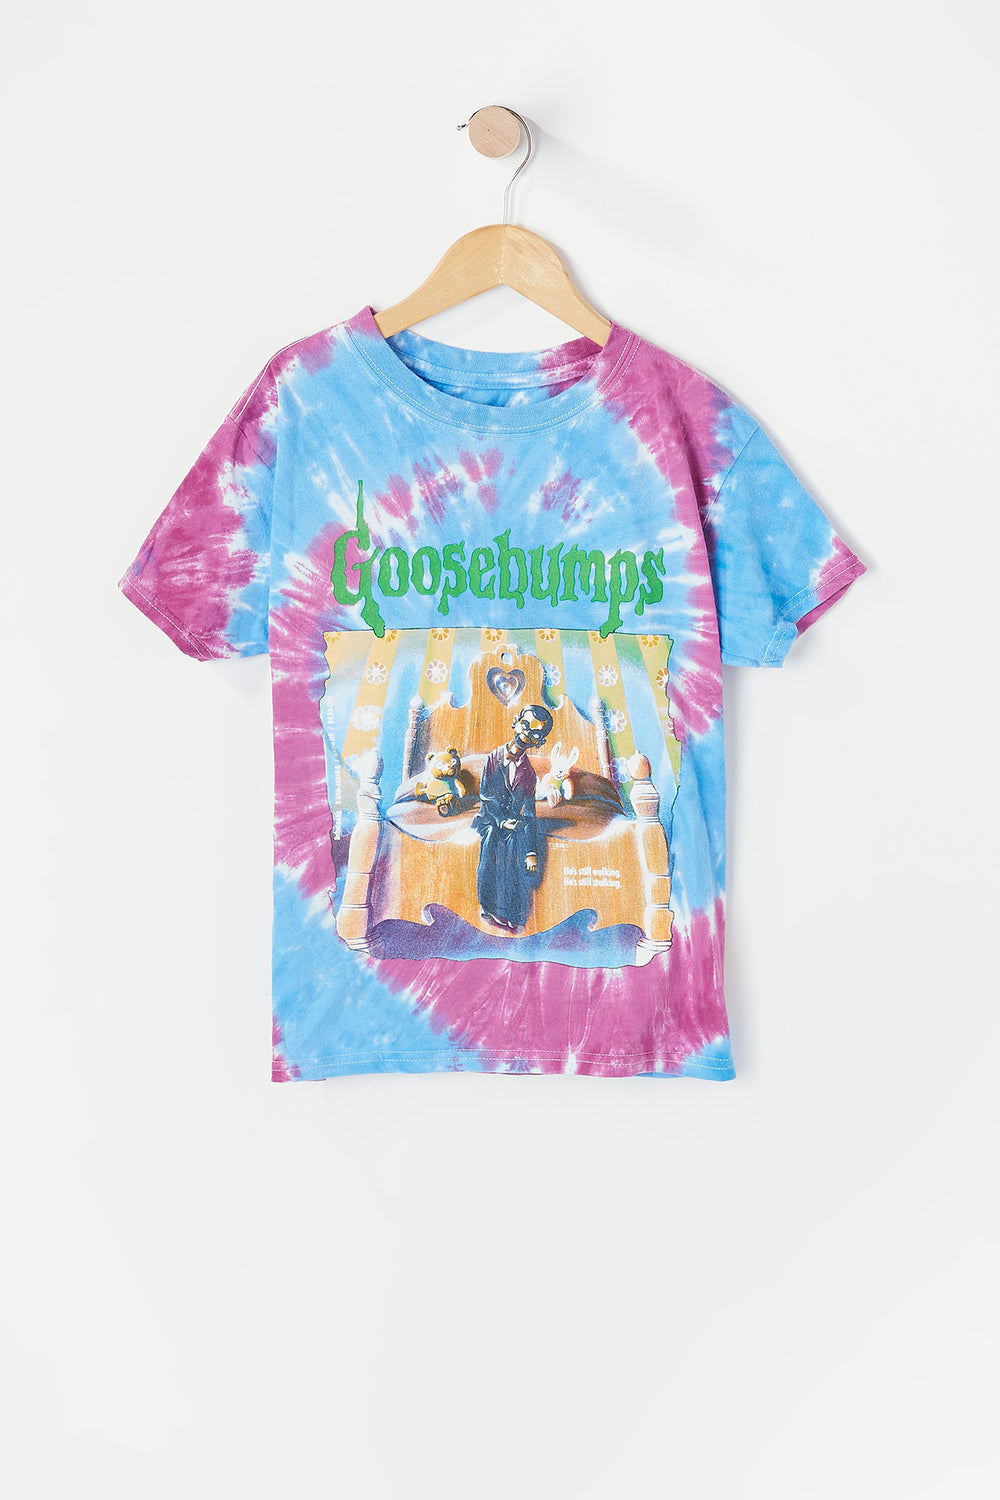 Youth Goosebumps T-Shirt Purple